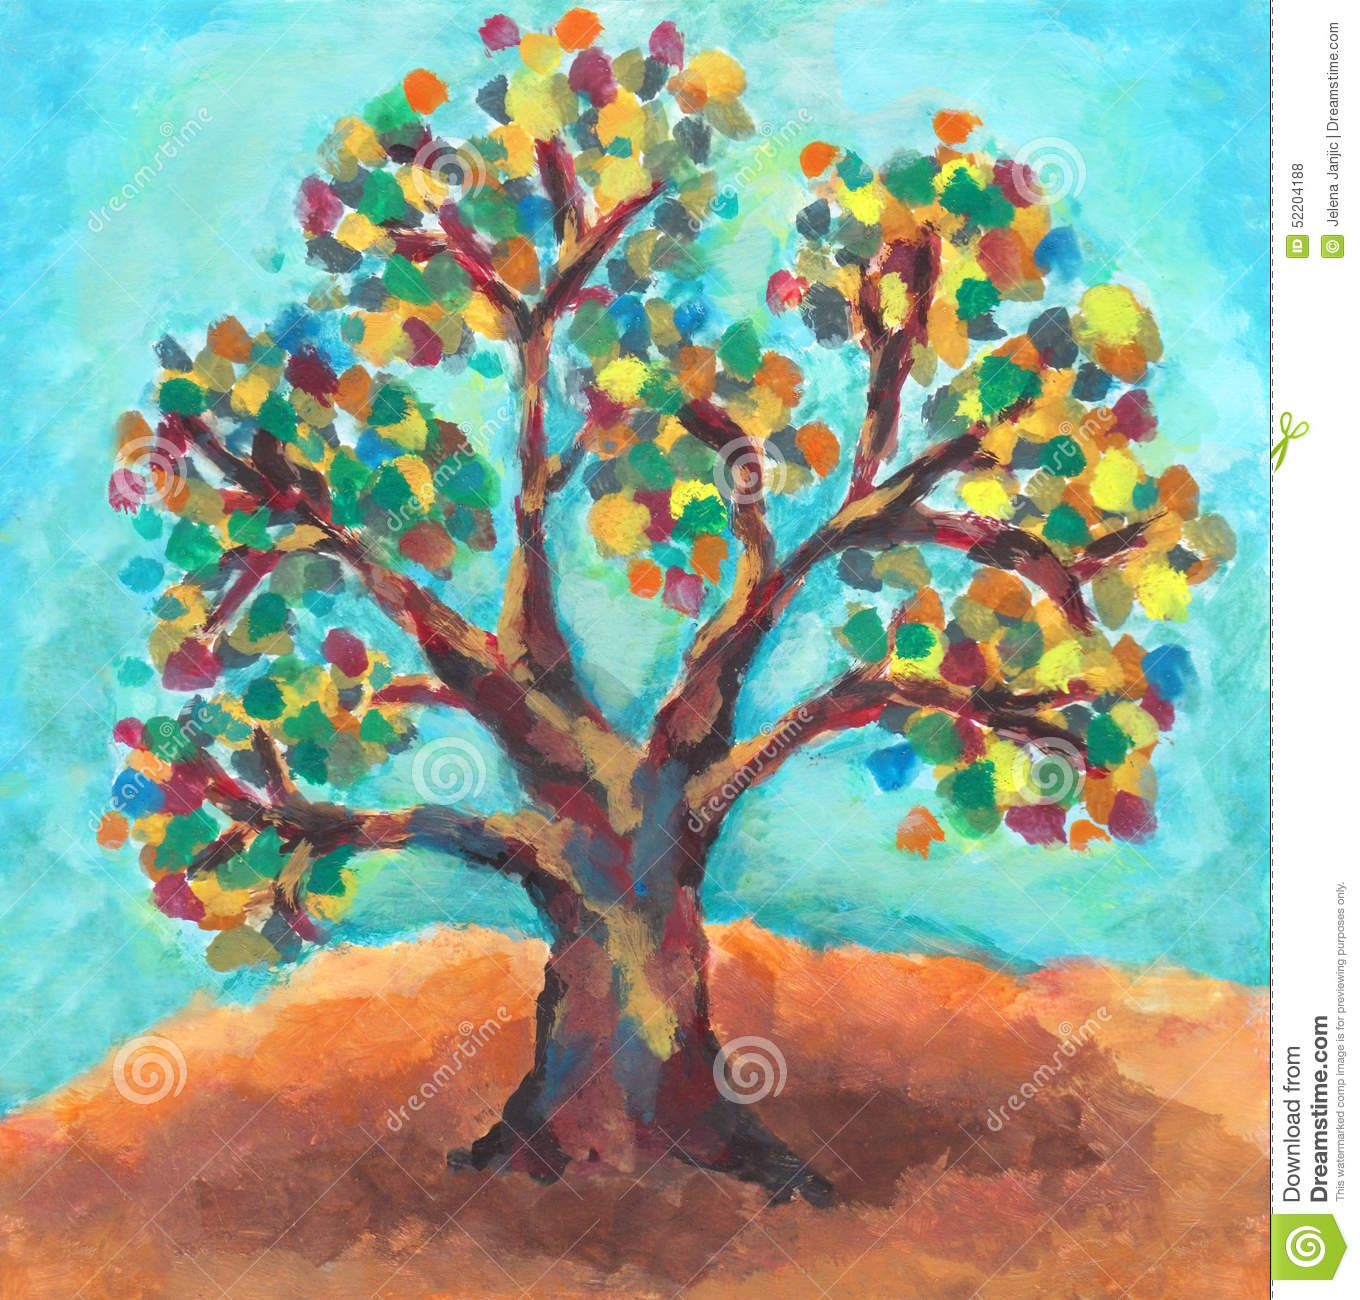 Peinture l 39 huile d 39 arbre color illustration stock for Pintura color albero